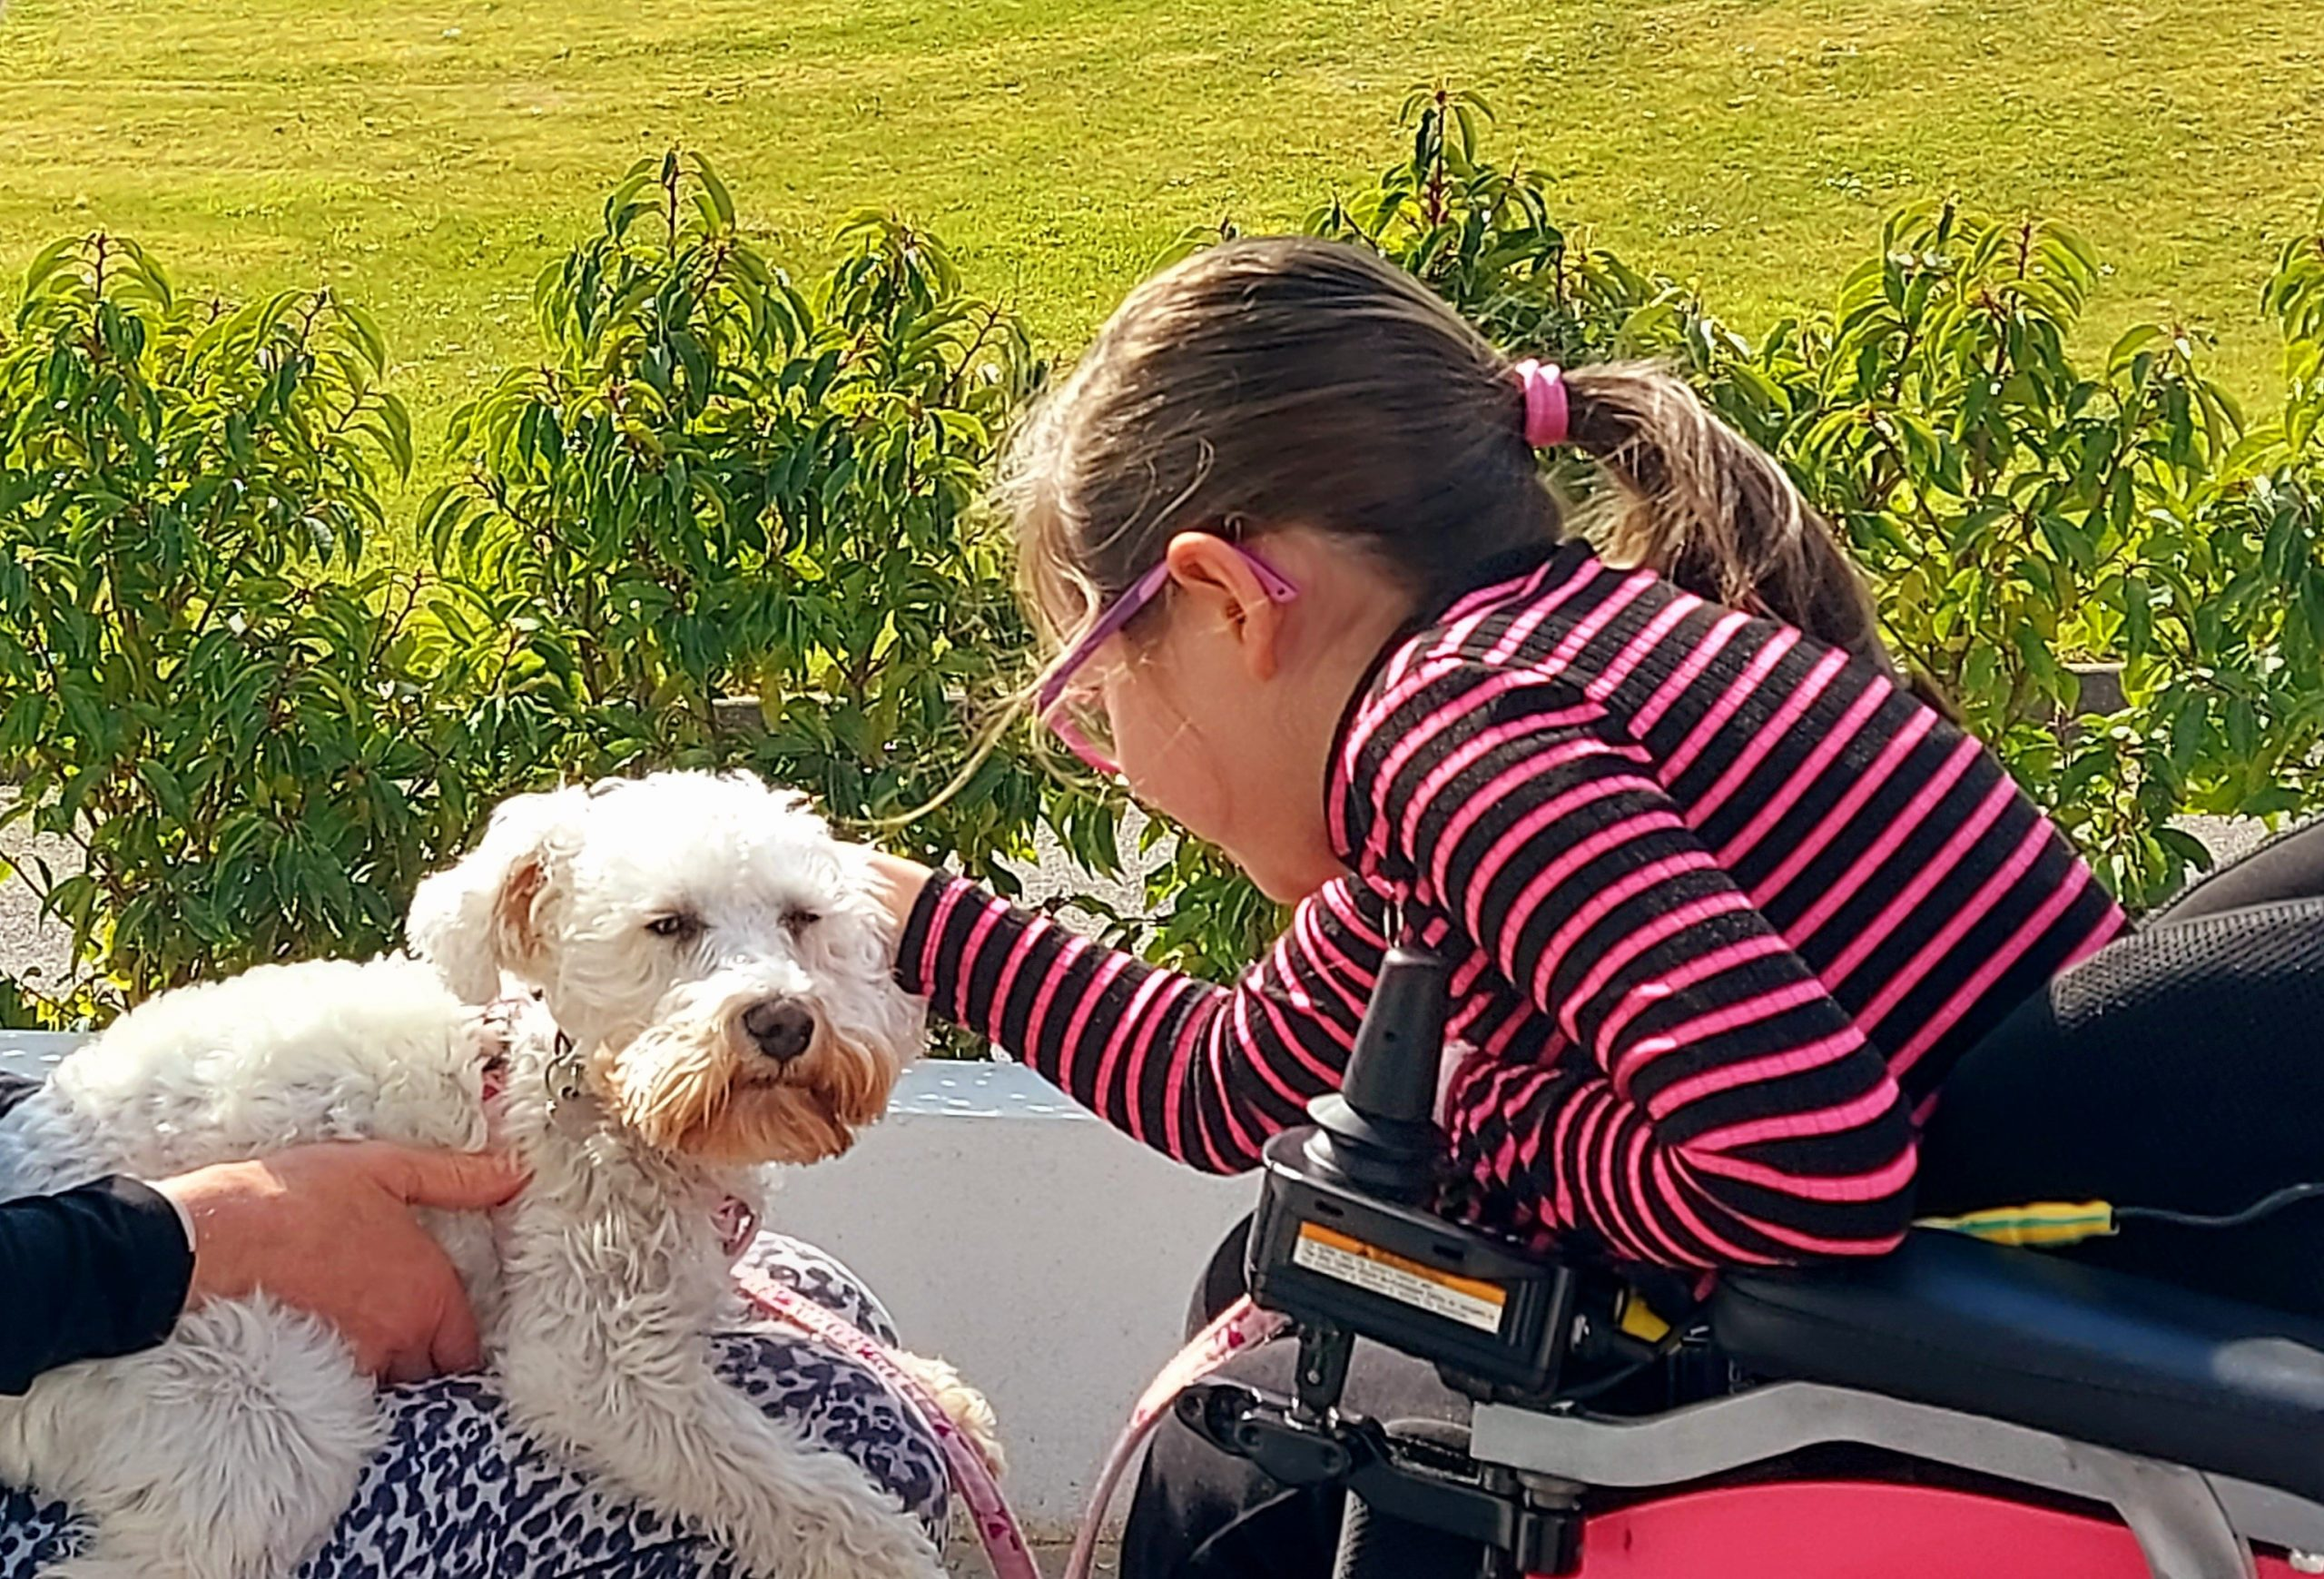 Julie petting a small white dog on a lap.